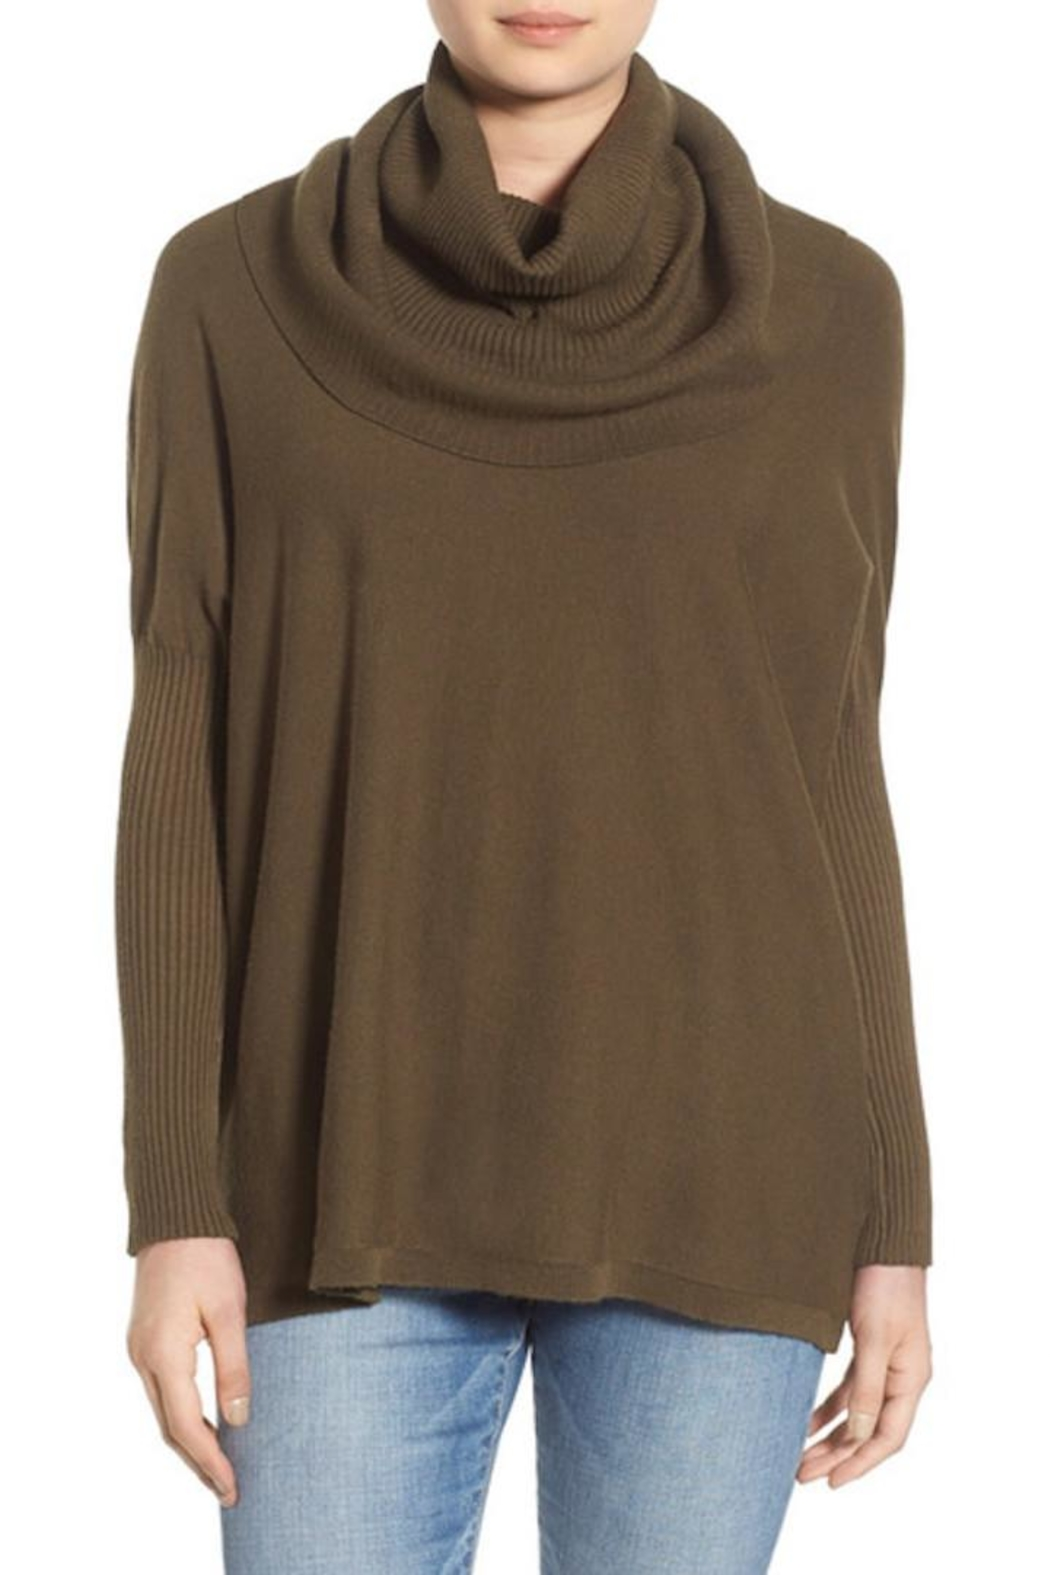 Dreamers Cowl Neck Pullover Top - Main Image